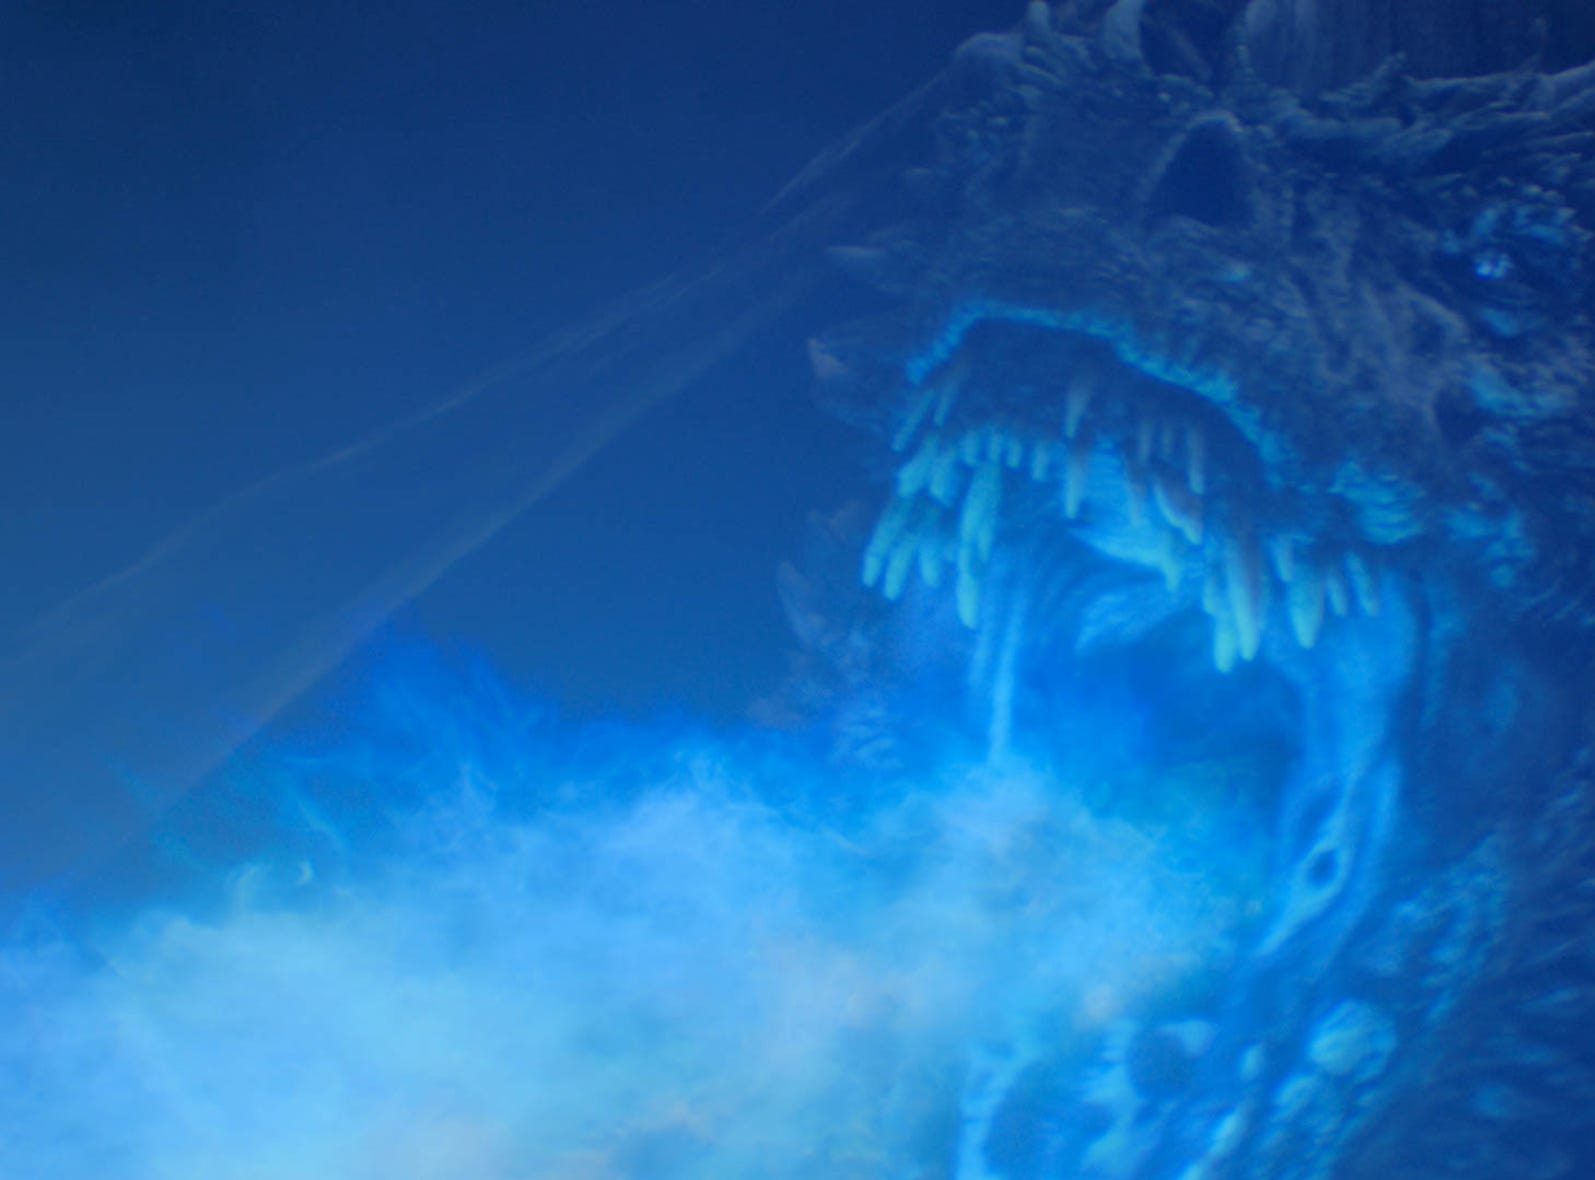 The dragon revived by the Night King delivers a signature blue-flame greeting during Sunday's episode of 'Game of Thrones.'